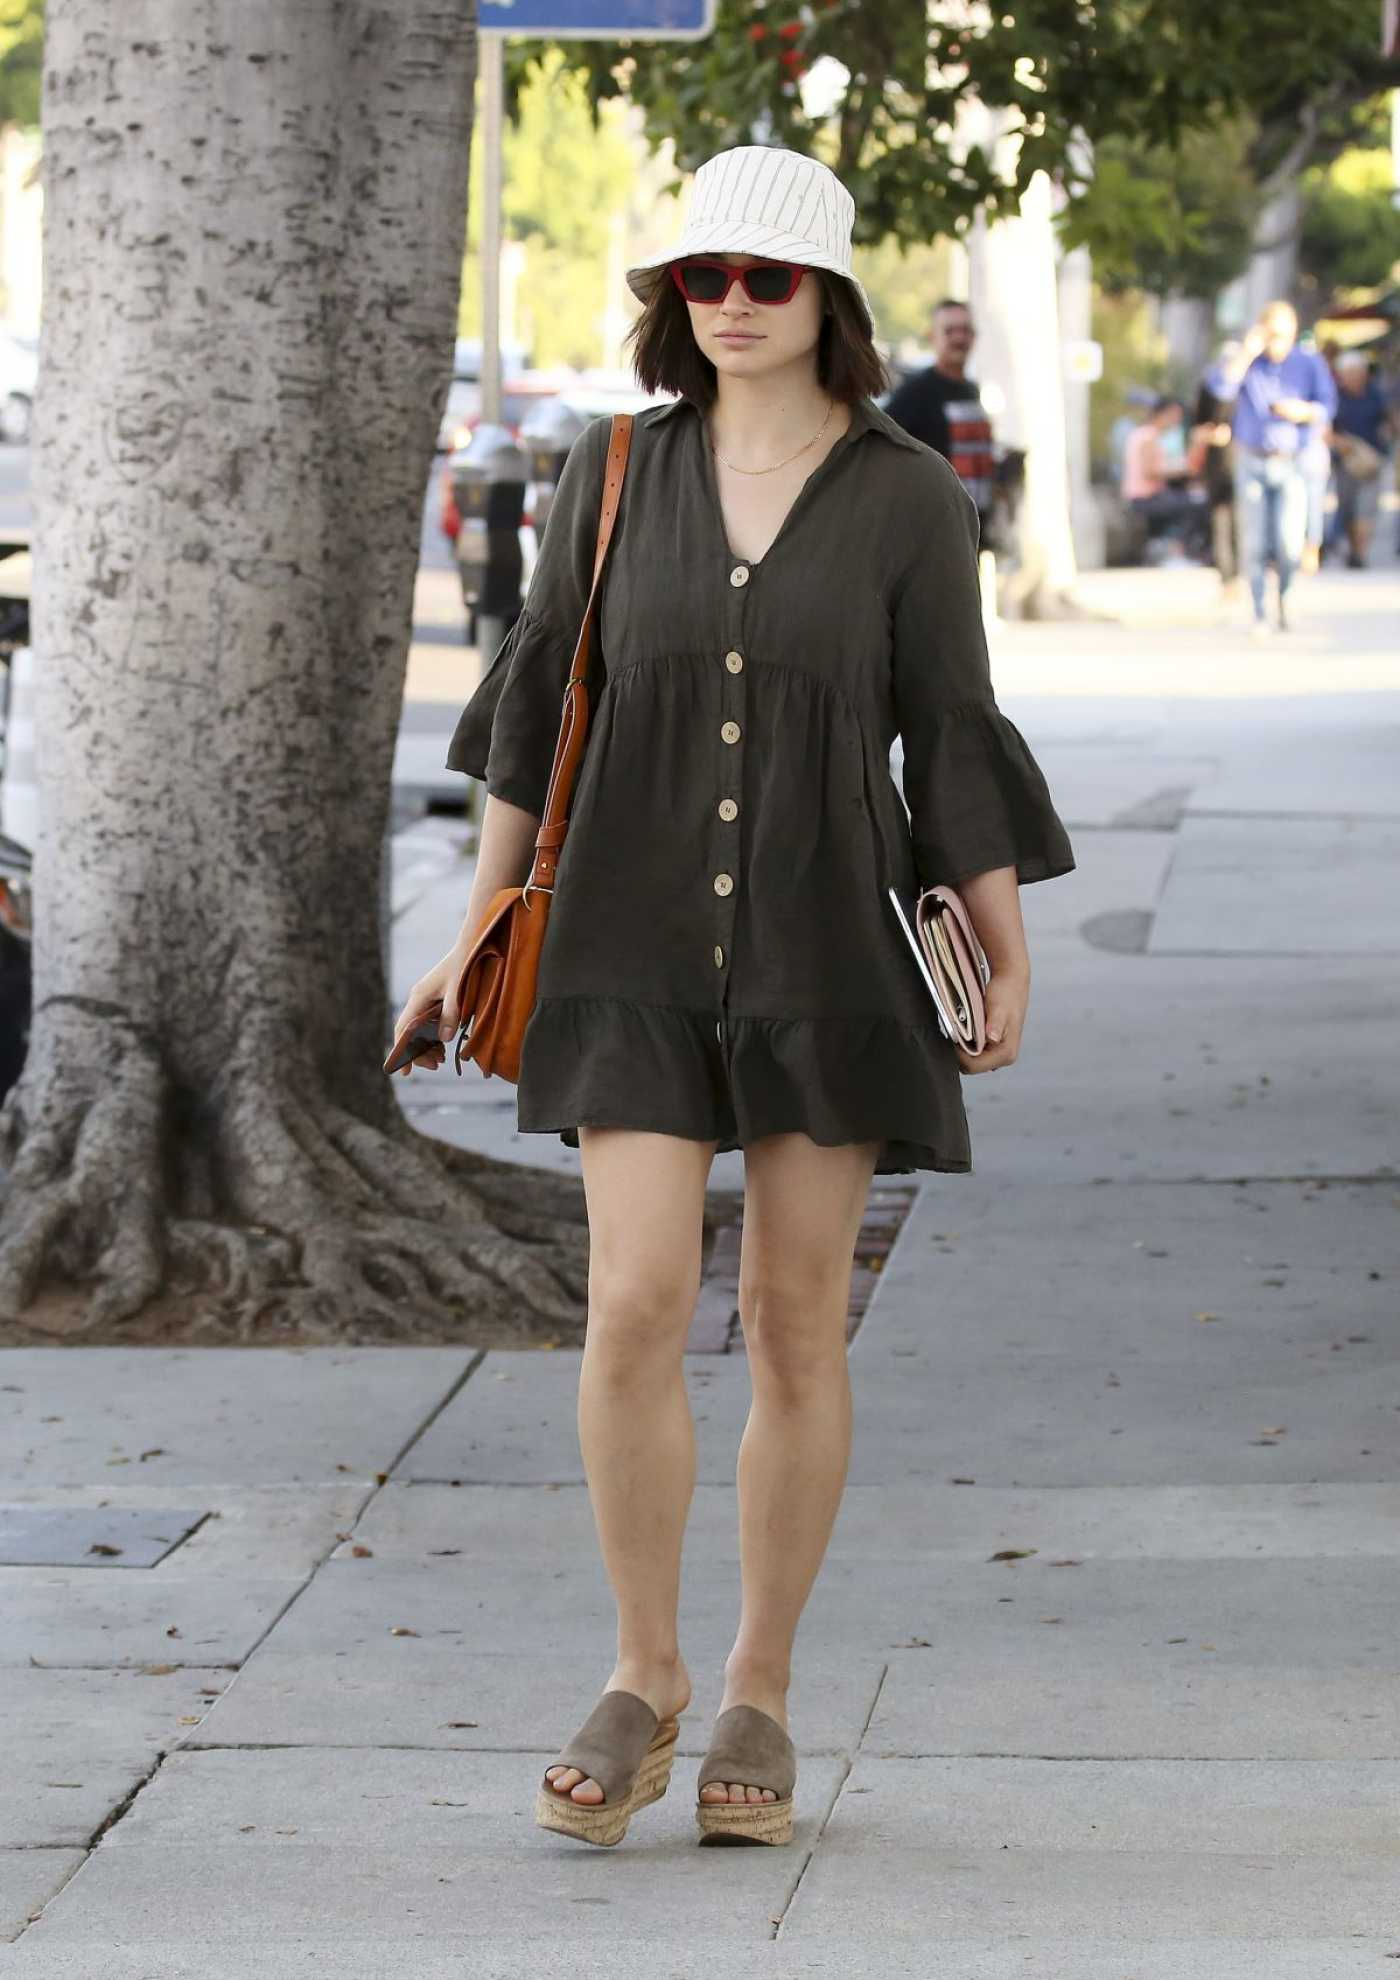 Crystal Reed in a Short Olive Dress Was Seen Out in Los Angeles 07/30/2019